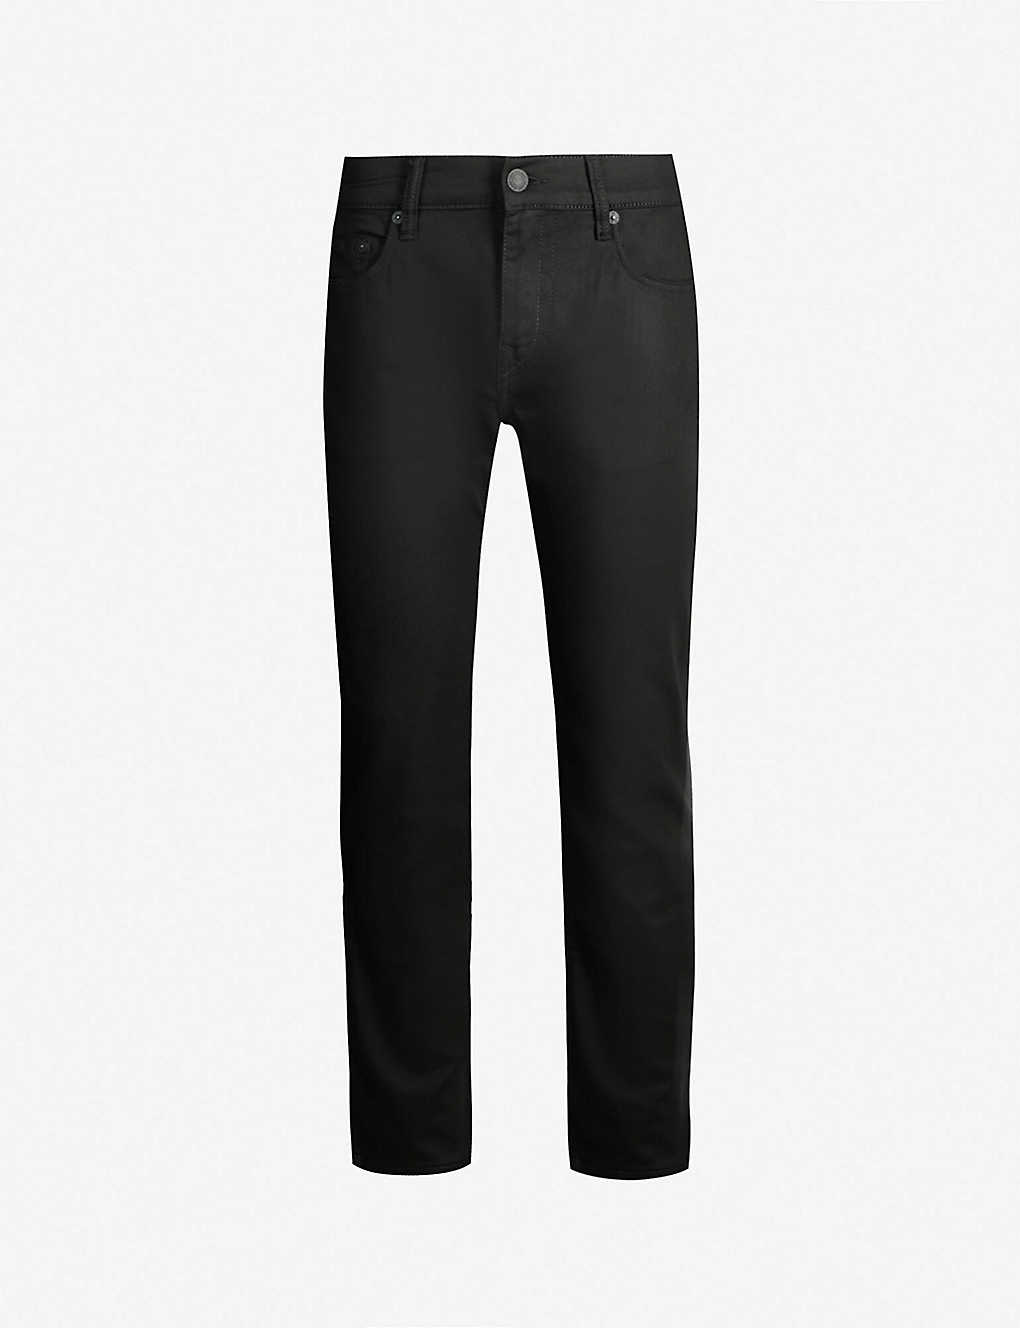 502ccda8a6ab TRUE RELIGION - Rocco slim-fit skinny jeans | Selfridges.com